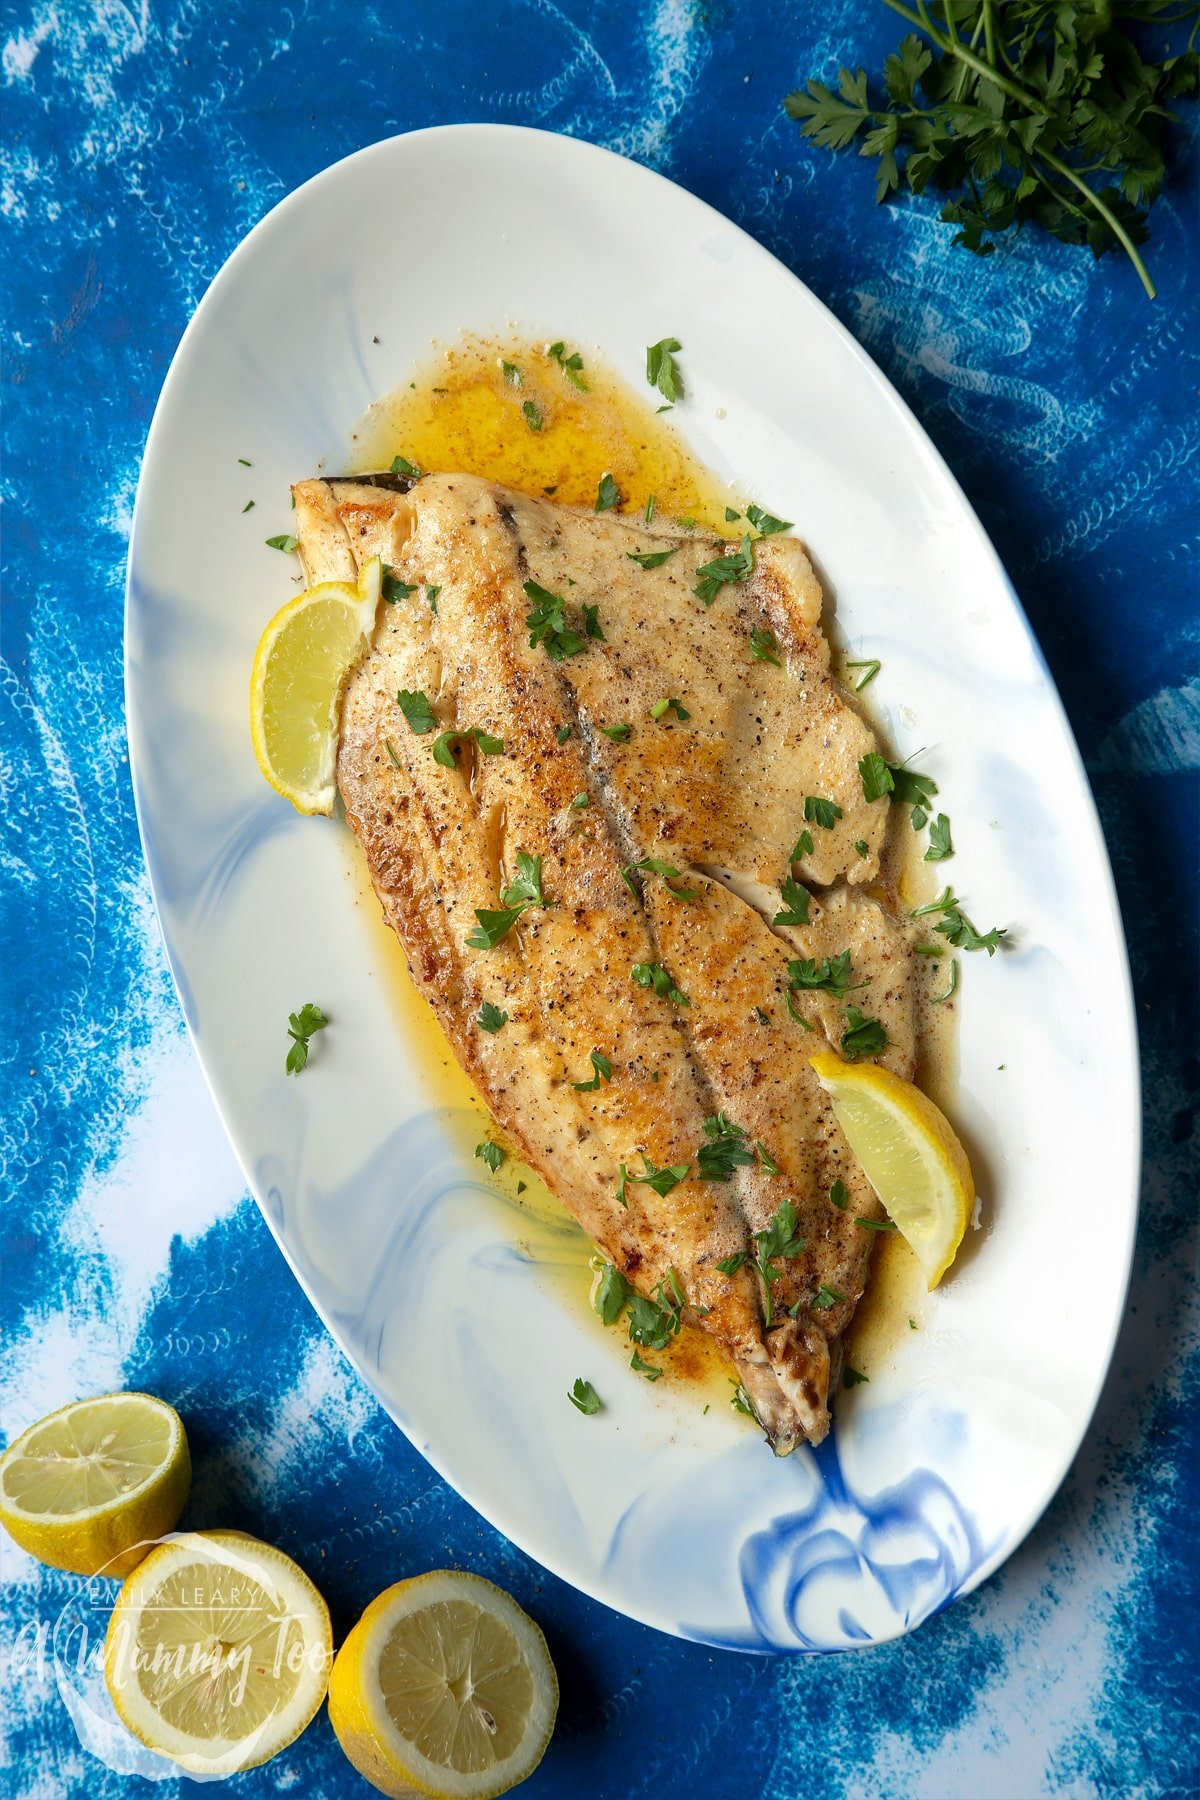 Pan-fried Yellowtail on an oval serving dish. The fish fillet is scattered with parsley and dotted with lemon wedges.